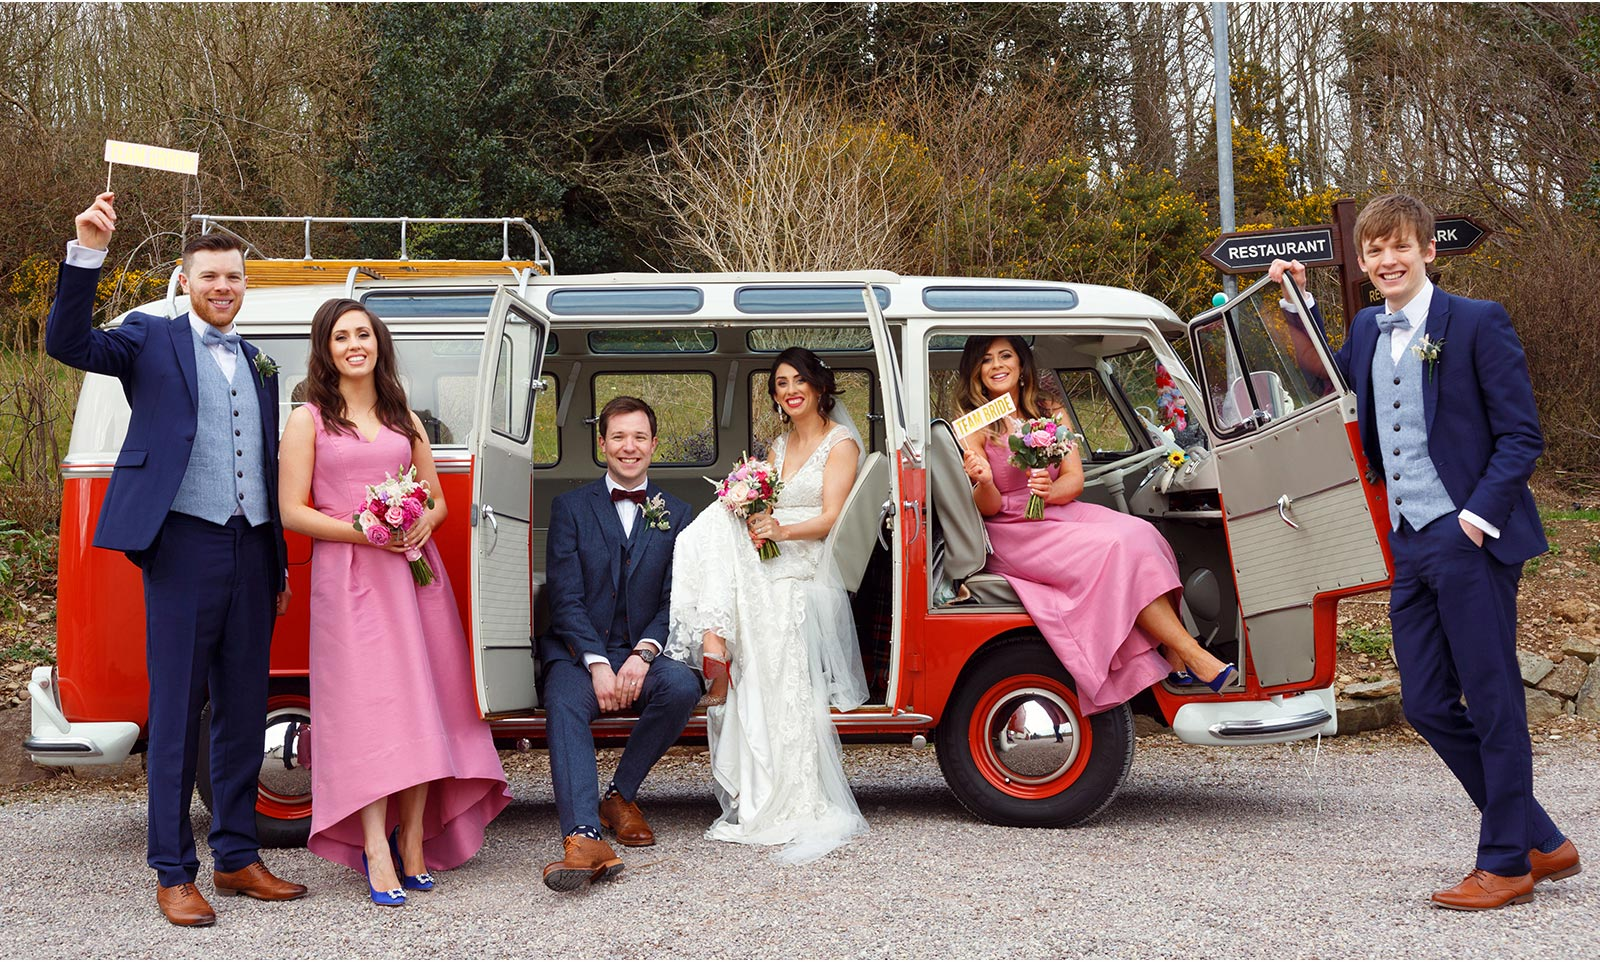 Bridal Party pose on VW campervan